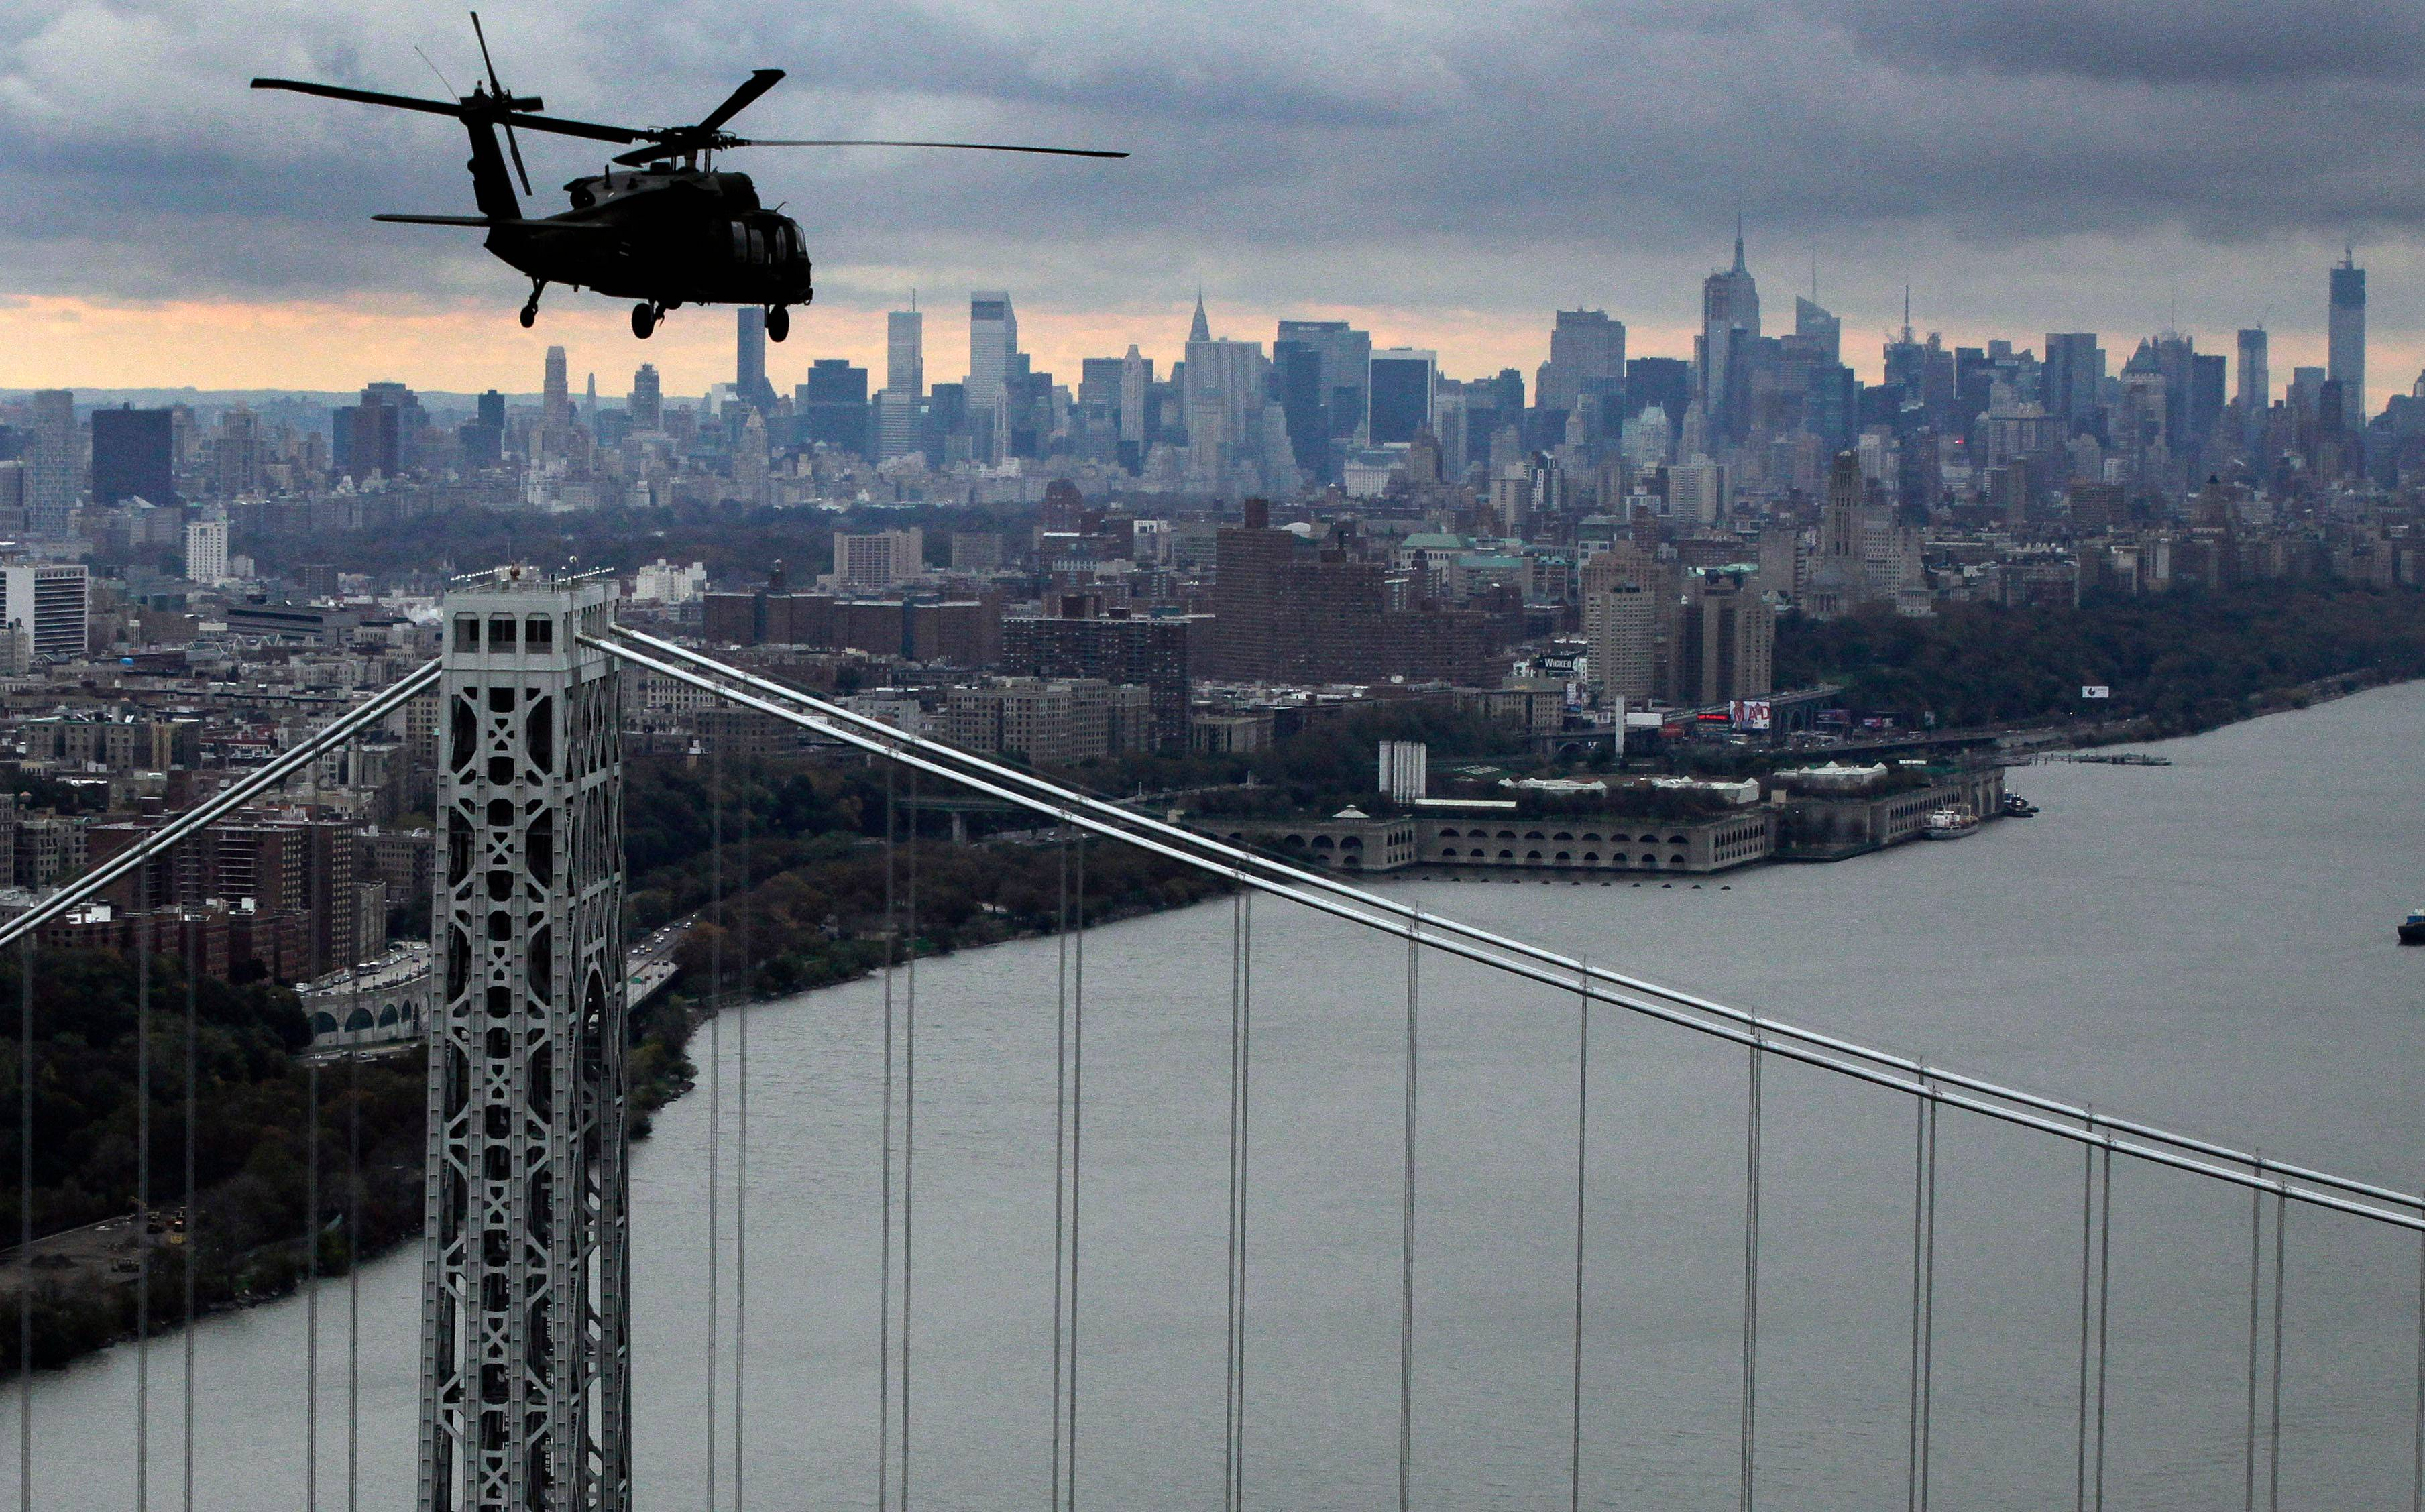 A New York Air National Guard helicopter flies above the George Washington Bridge towards Manhattan, Wednesday, Oct. 31, 2012 in New York. Gov. Andrew Cuomo, Sen. Kirsten Gillibrand, D-NY, Sen. Charles Schumer, D-NY, and local officials took the flight over the city, Nassau and Westchester counties to get an assessment of damages from superstorm Sandy.